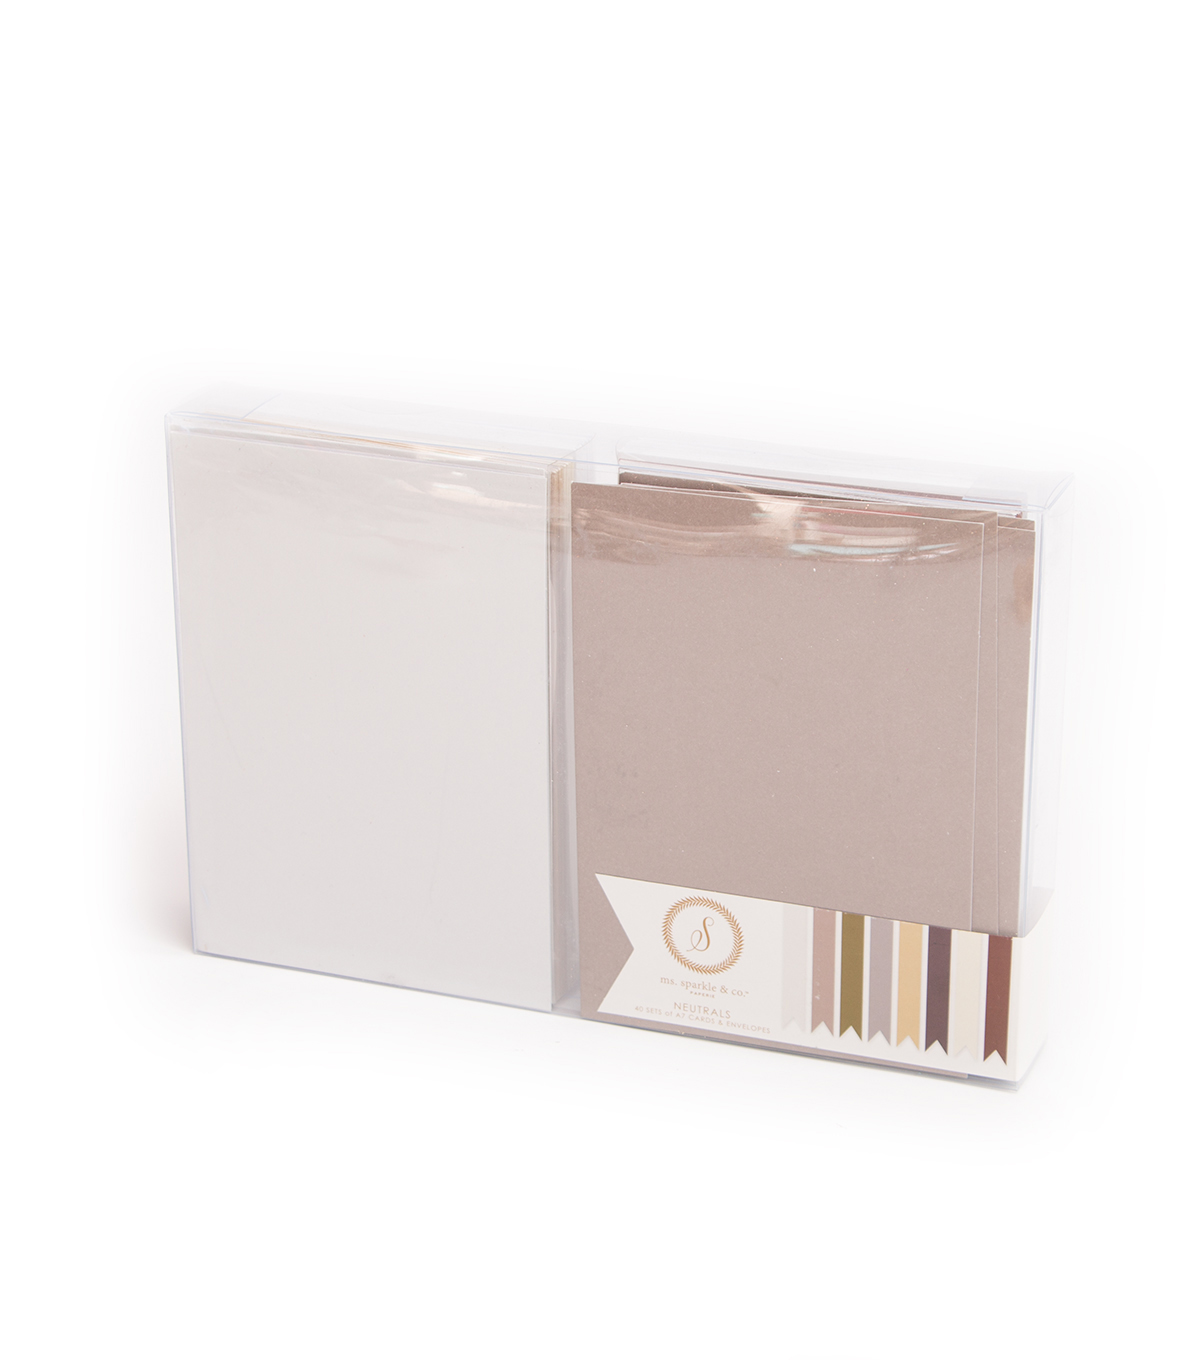 Ms. Sparkle & Co. 40 Pack A7 Cards & Envelopes-Neutrals